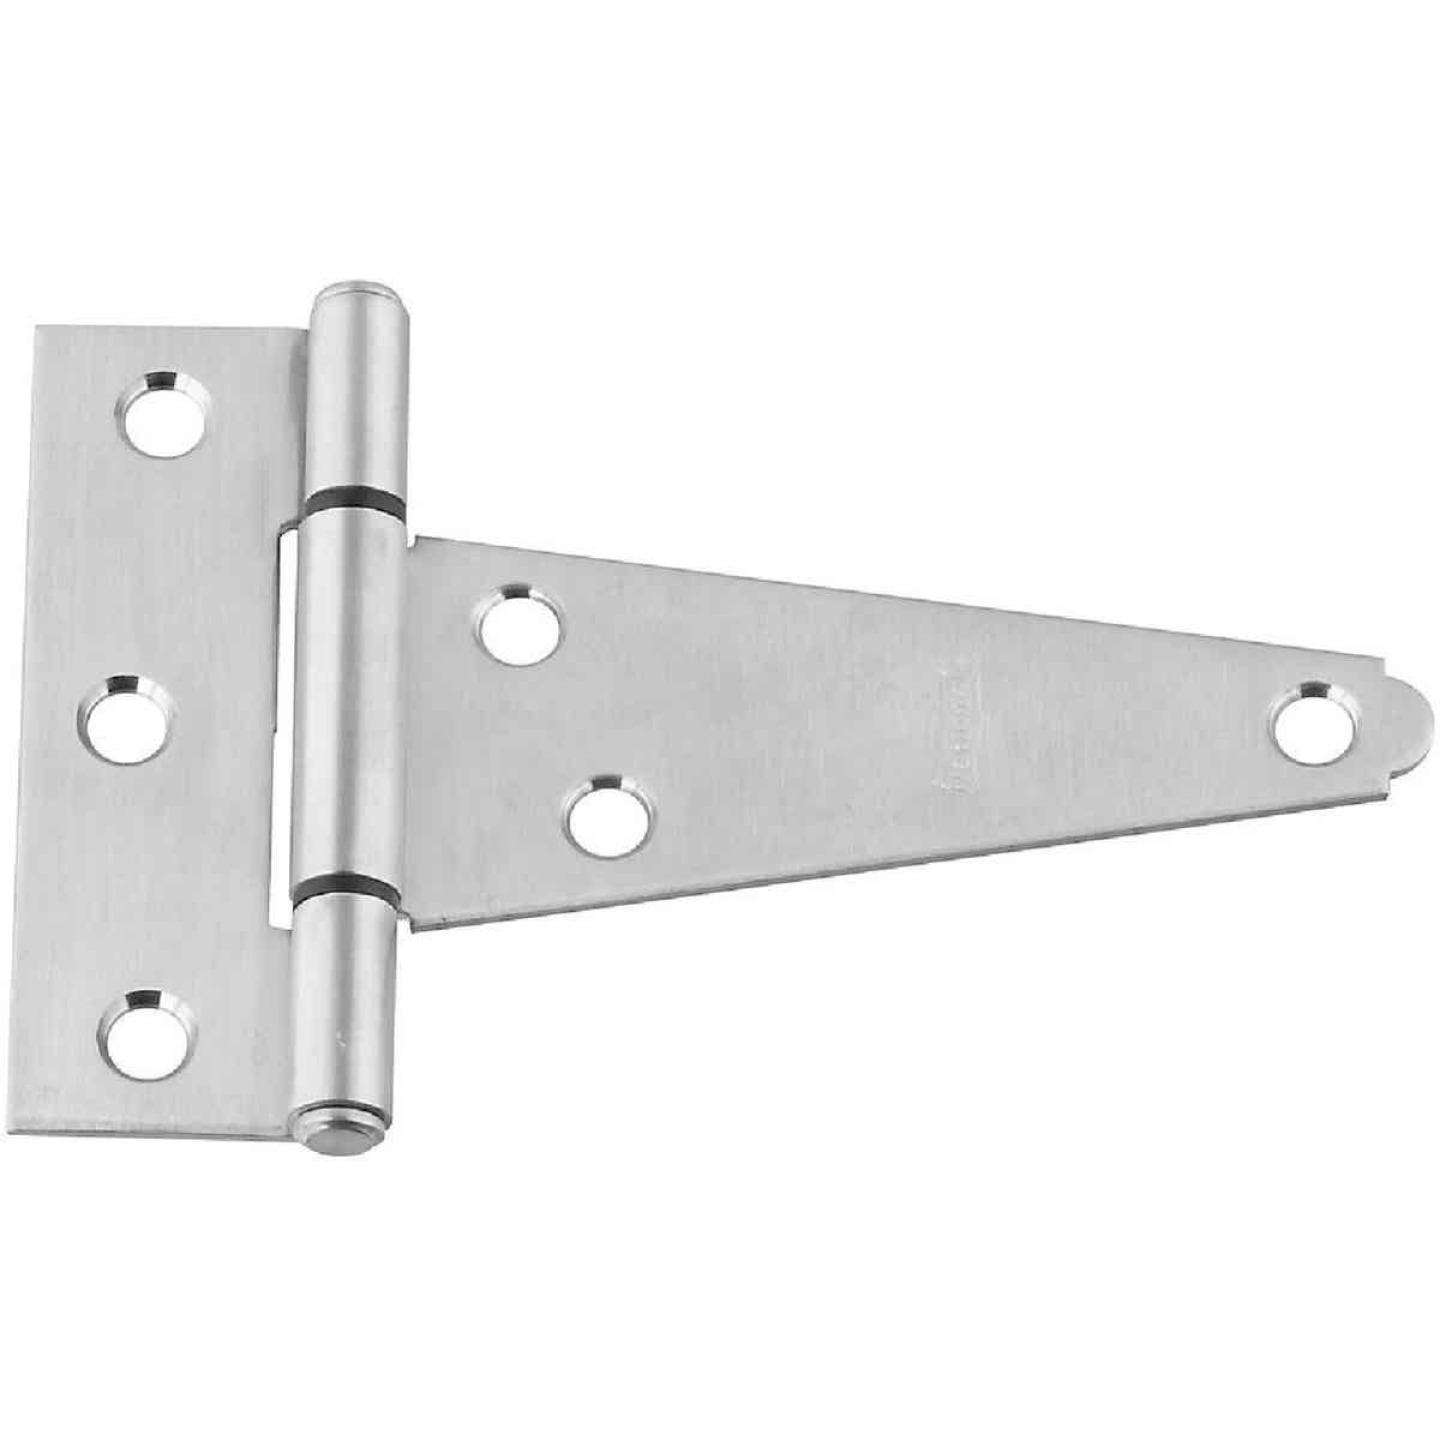 National 4 In. Stainless Steel Extra Heavy Tee Hinge Image 1